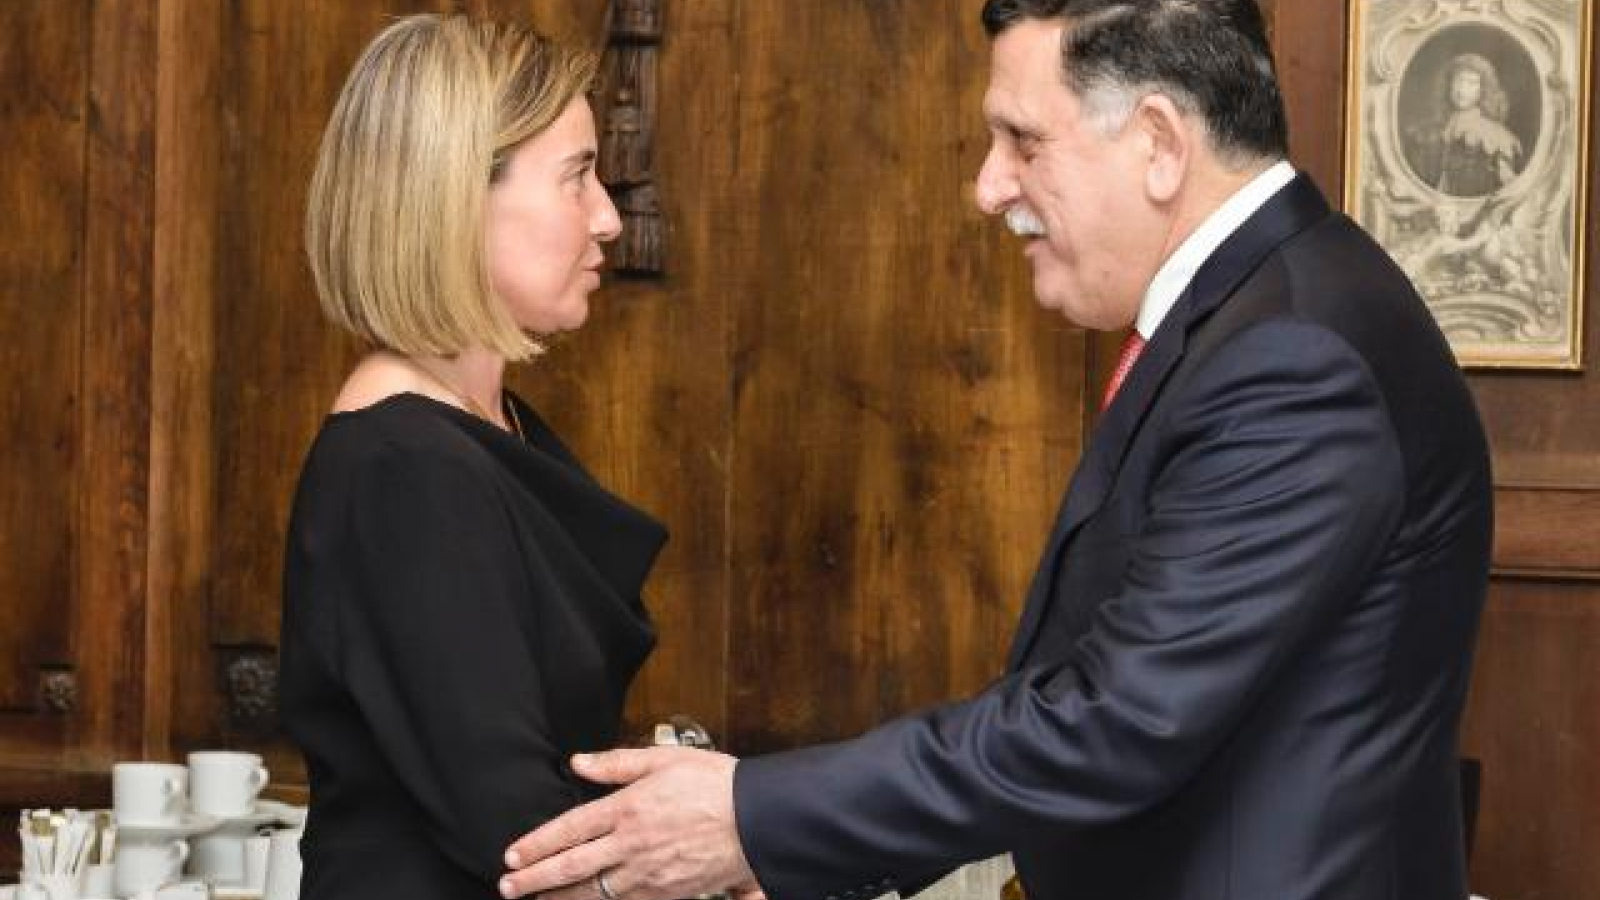 Federica Mogherini, High Representative for Foreign Affairs and Security Policy/Vice-President of the Commission and the President of the Presidential Council of Libya H.E. Fayez Mustafa al-Sarraj